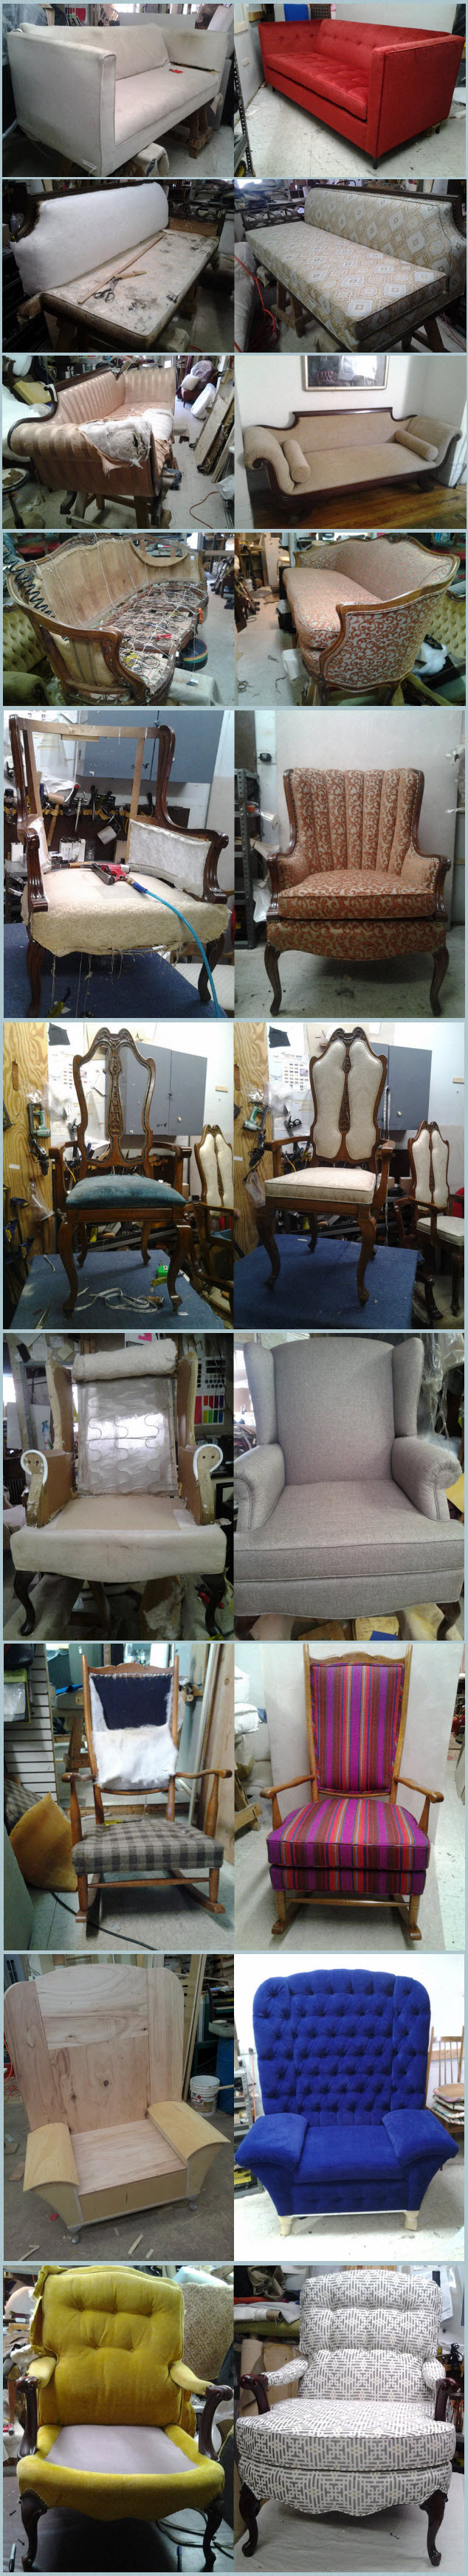 simons-reupholstery-before-and-after